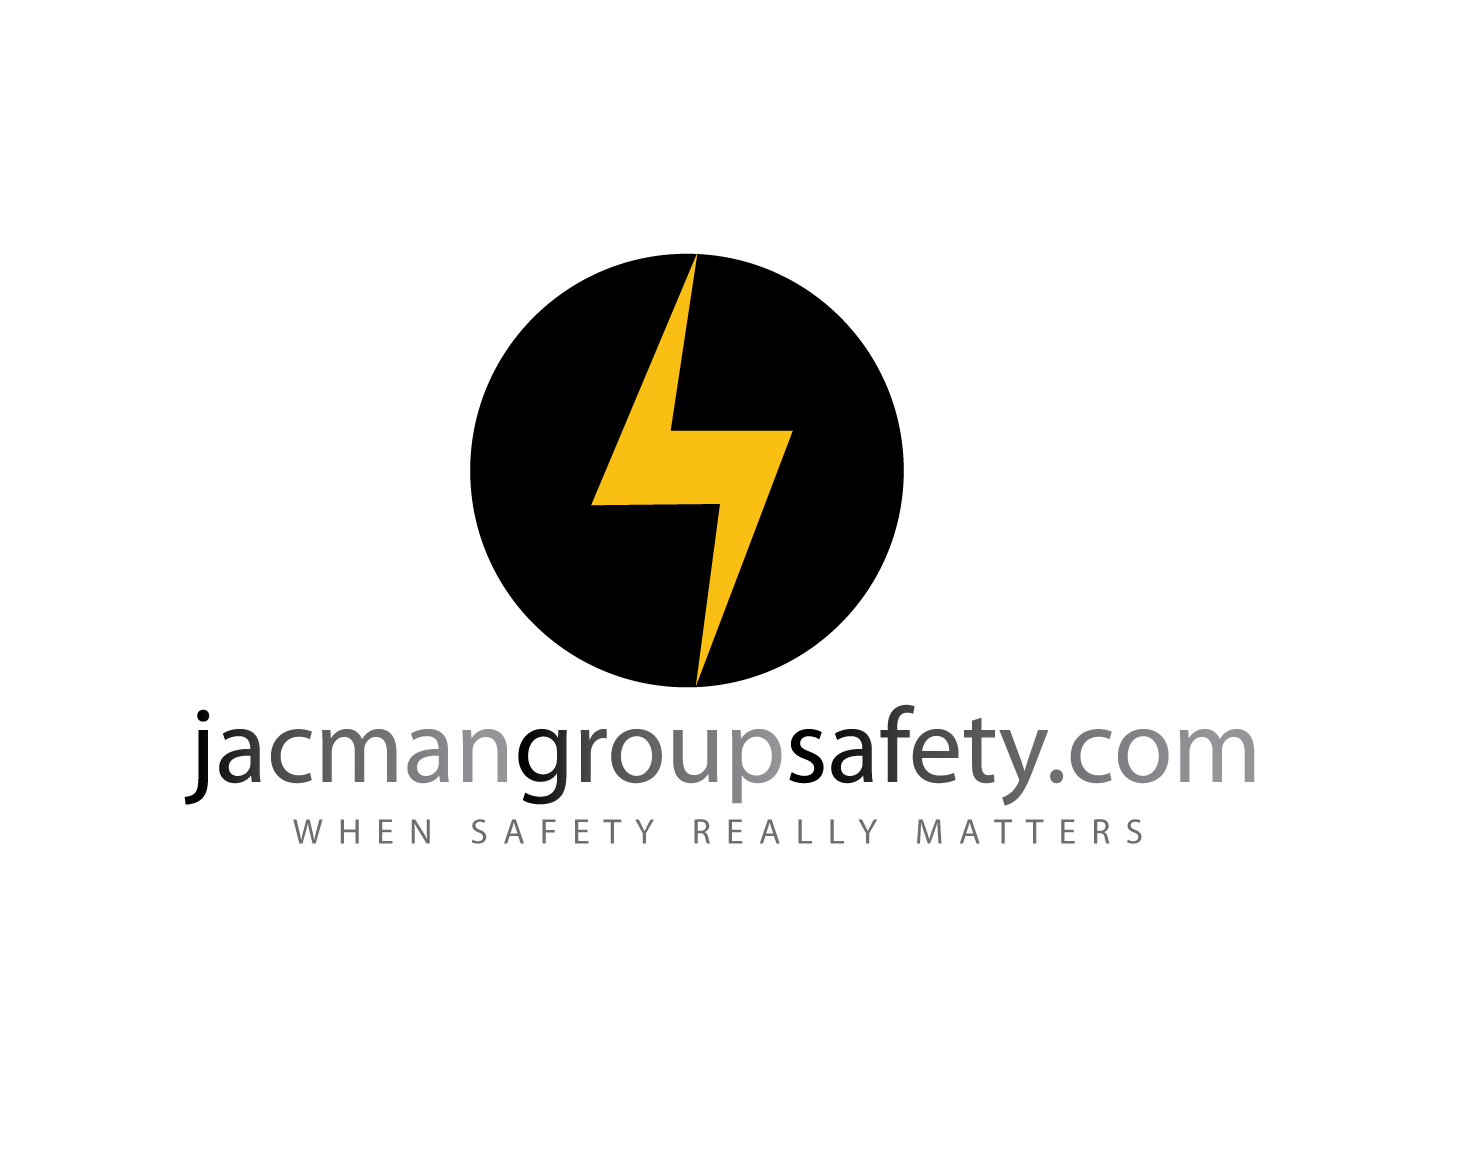 Logo Design by Roy Ferre - Entry No. 157 in the Logo Design Contest The Jacman Group Logo Design.